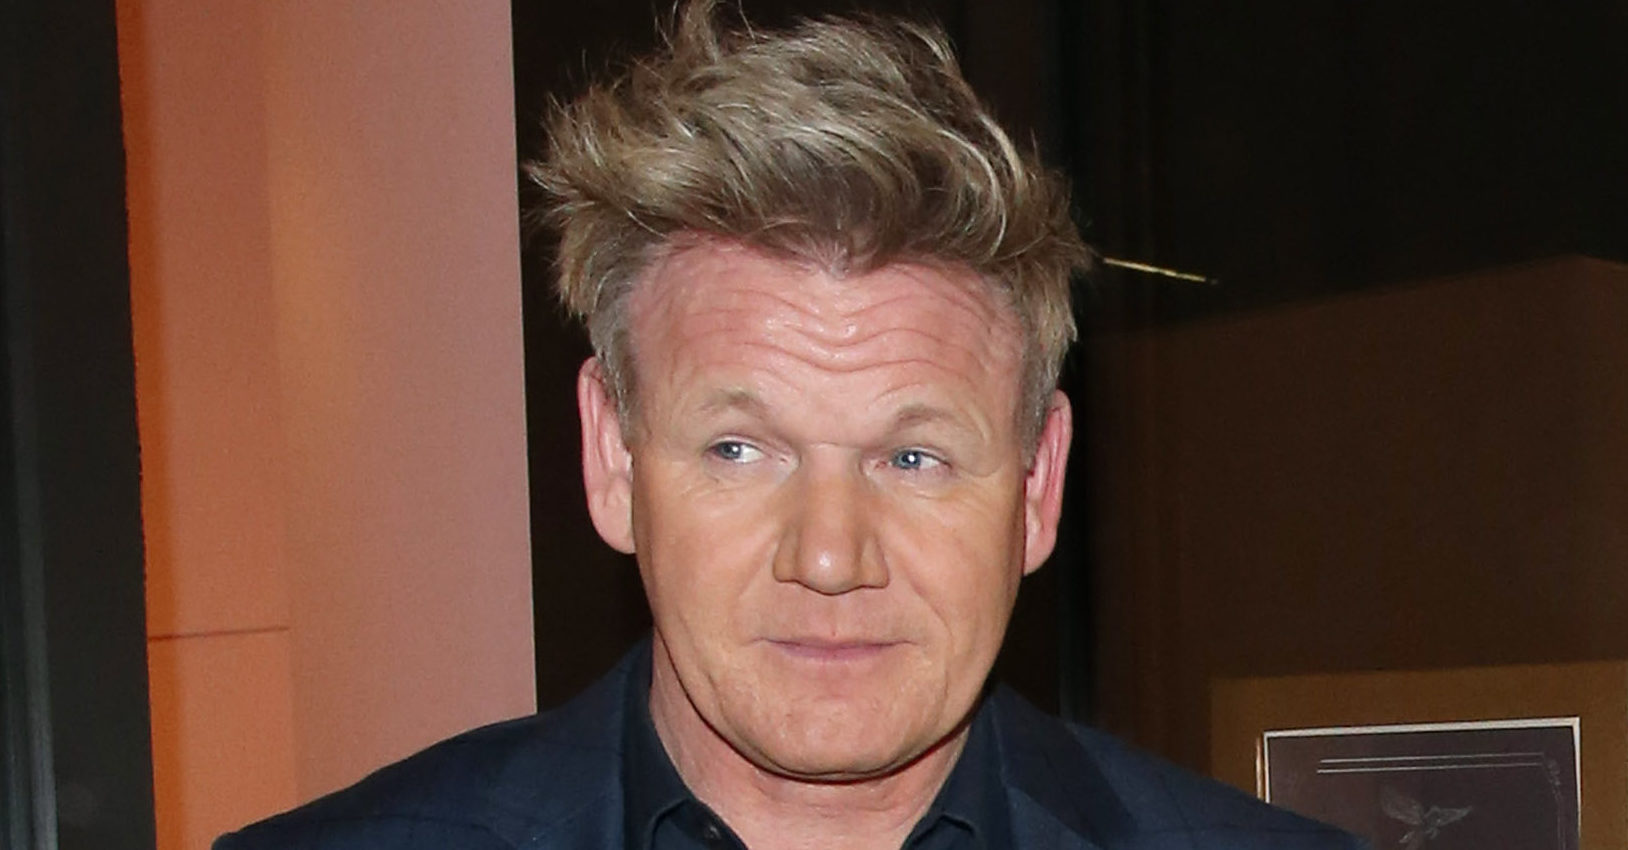 Gordon Ramsay slammed as he enjoys 22-mile bike ride amid government lockdown